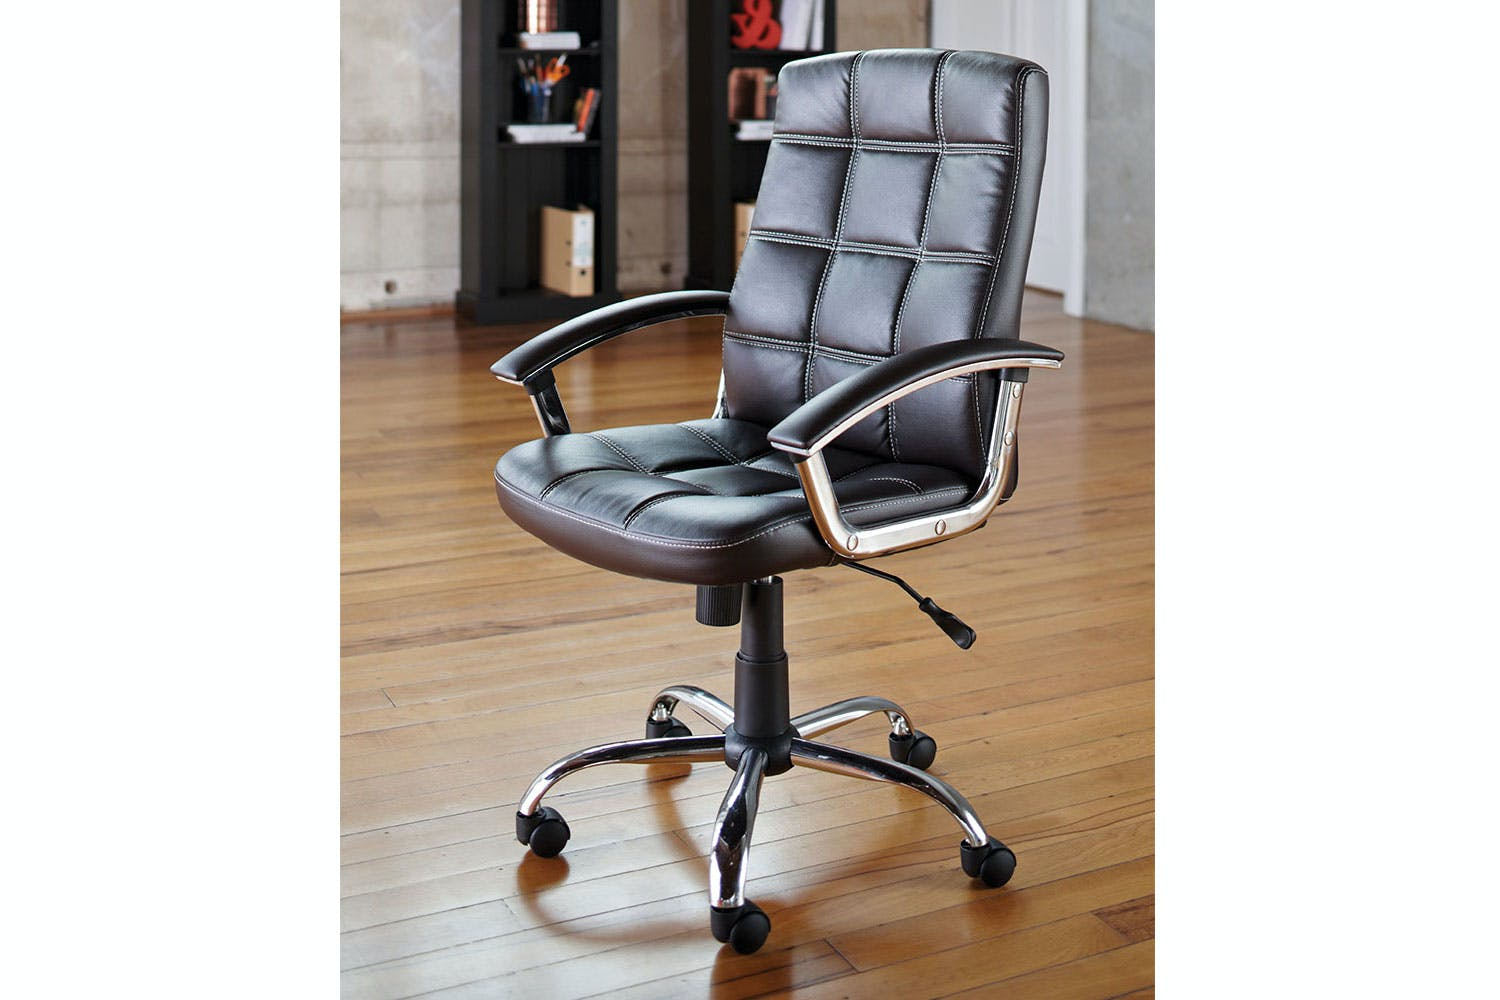 Image of Check Office Chair by TGV